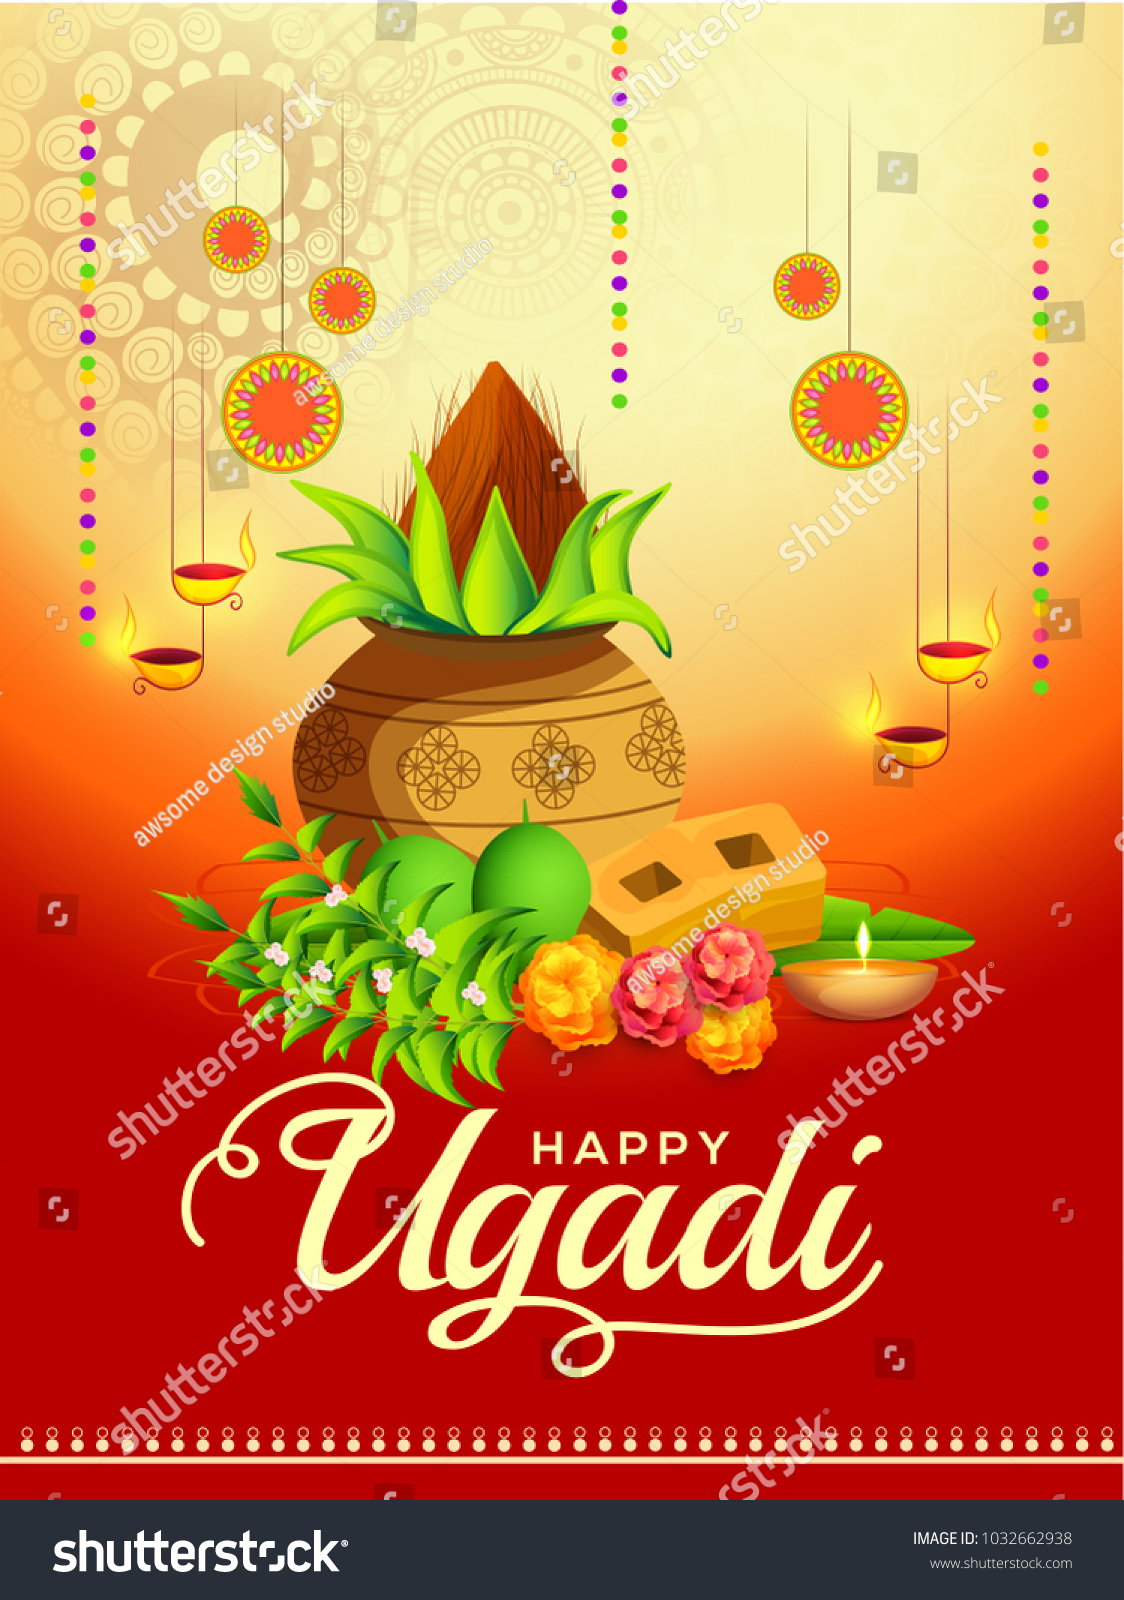 Illustration happy ugadi greeting card background stock vector illustration of happy ugadi greeting card background with decorated kalash kristyandbryce Images